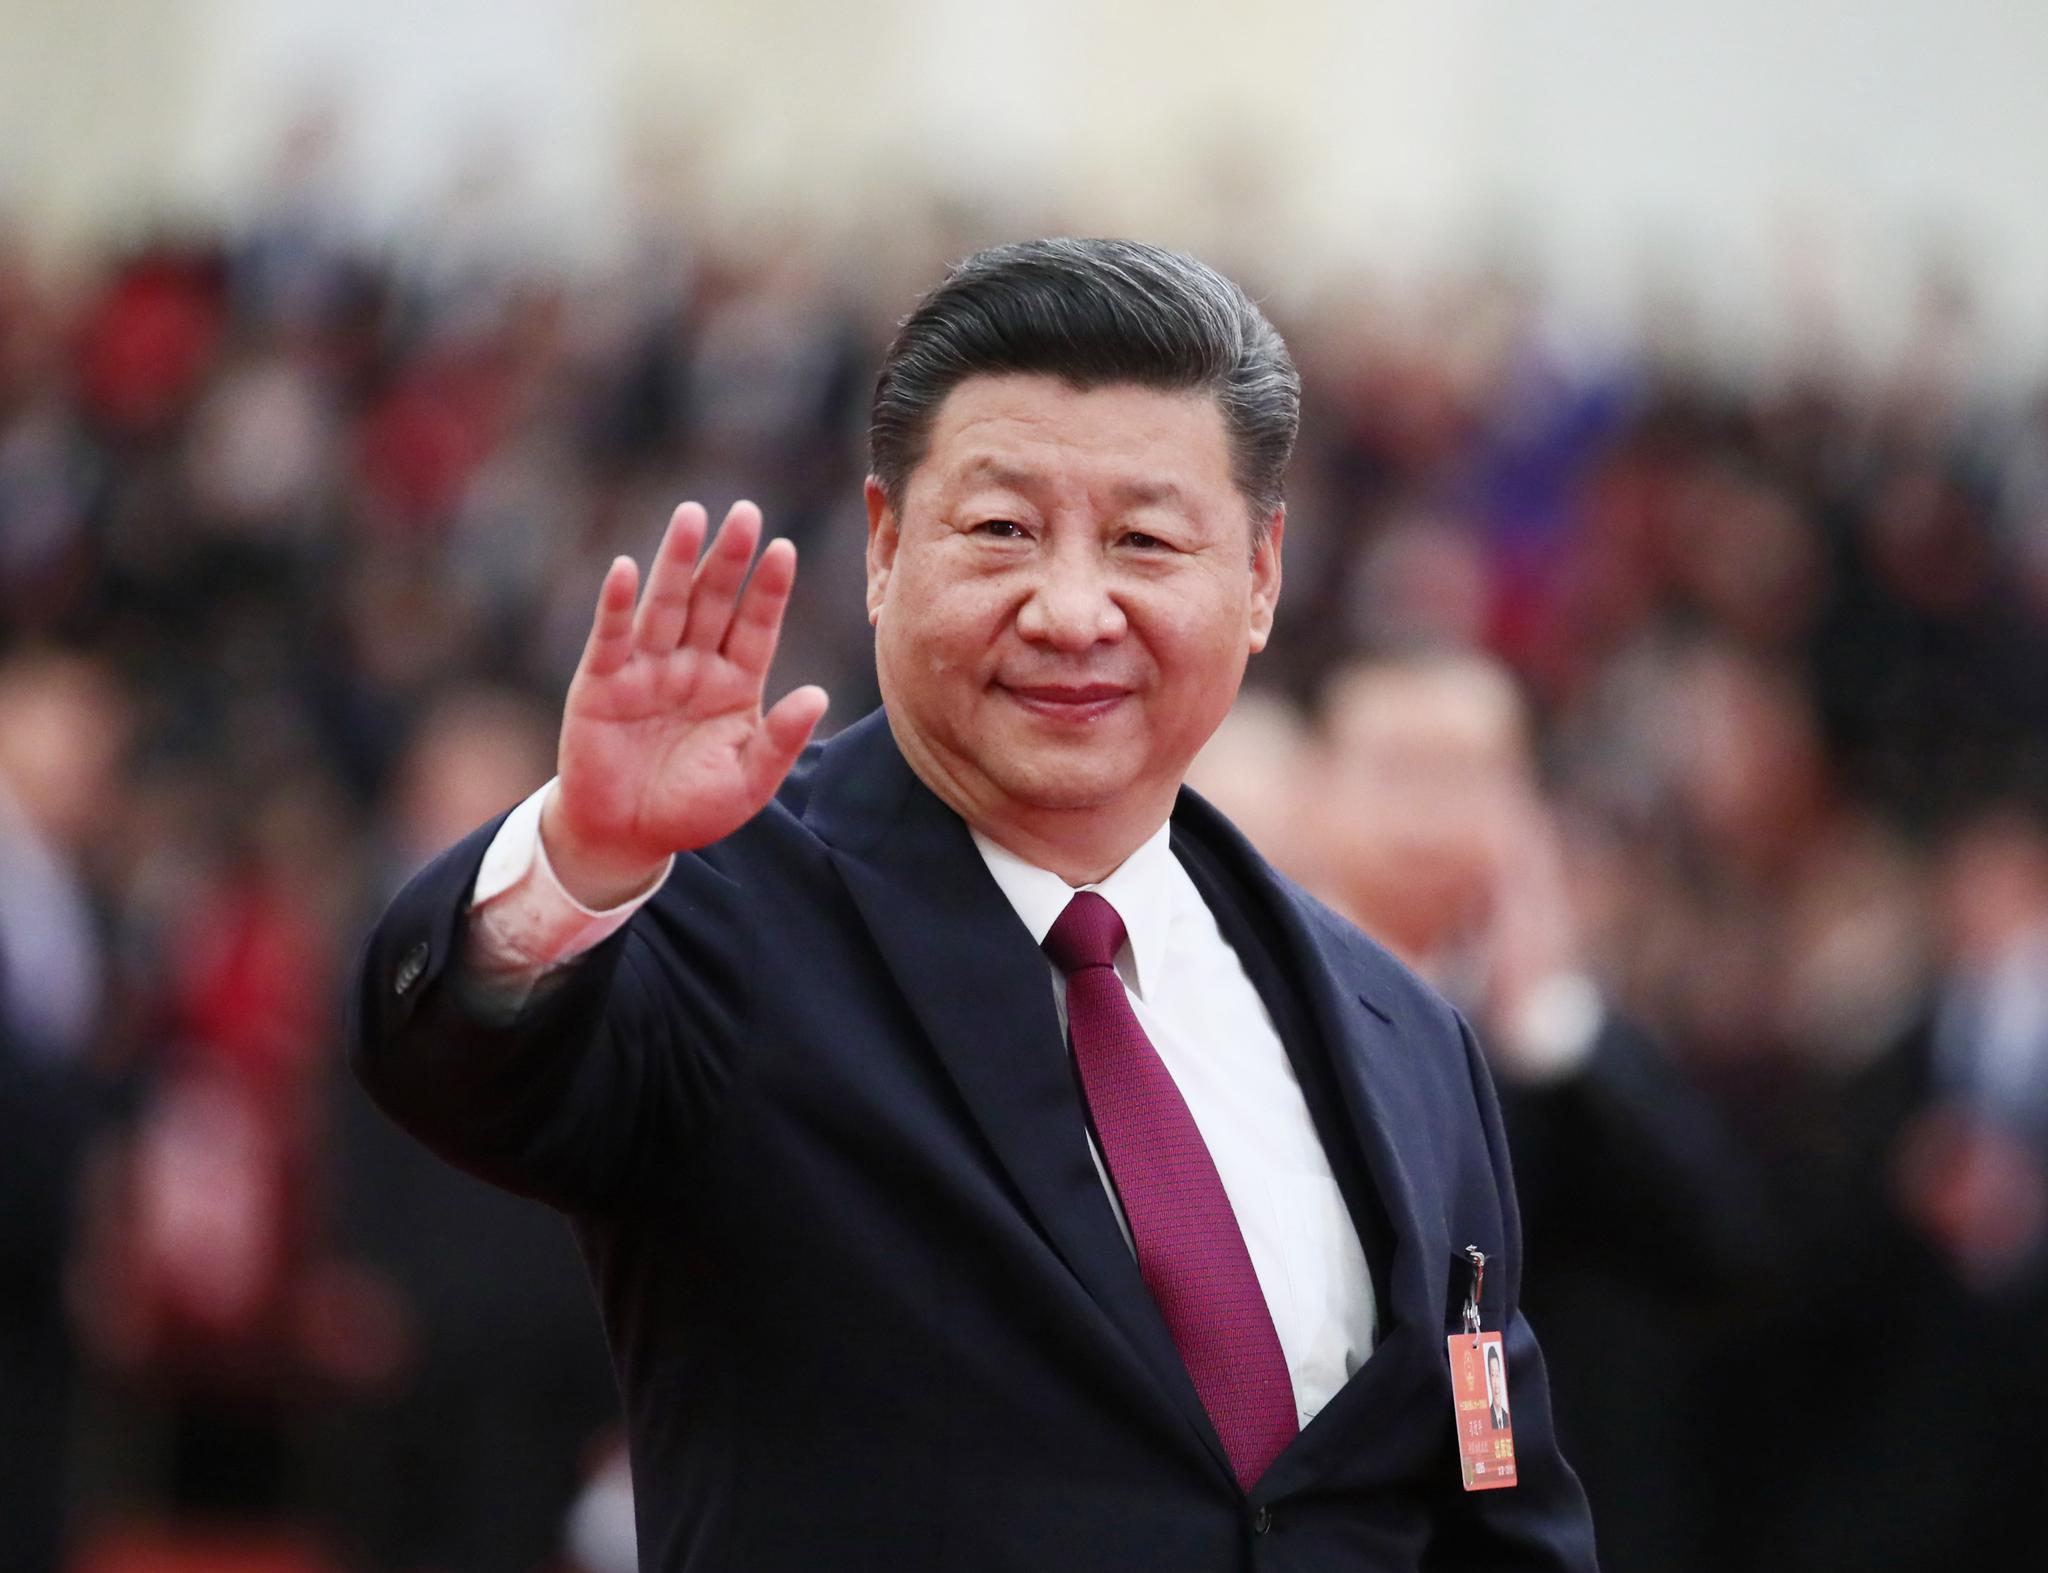 BEIJING - President Xi Jinping offered an assertive vision Tuesday of a  proud and capable China, culminating an unusual legislative session that  endowed him ...